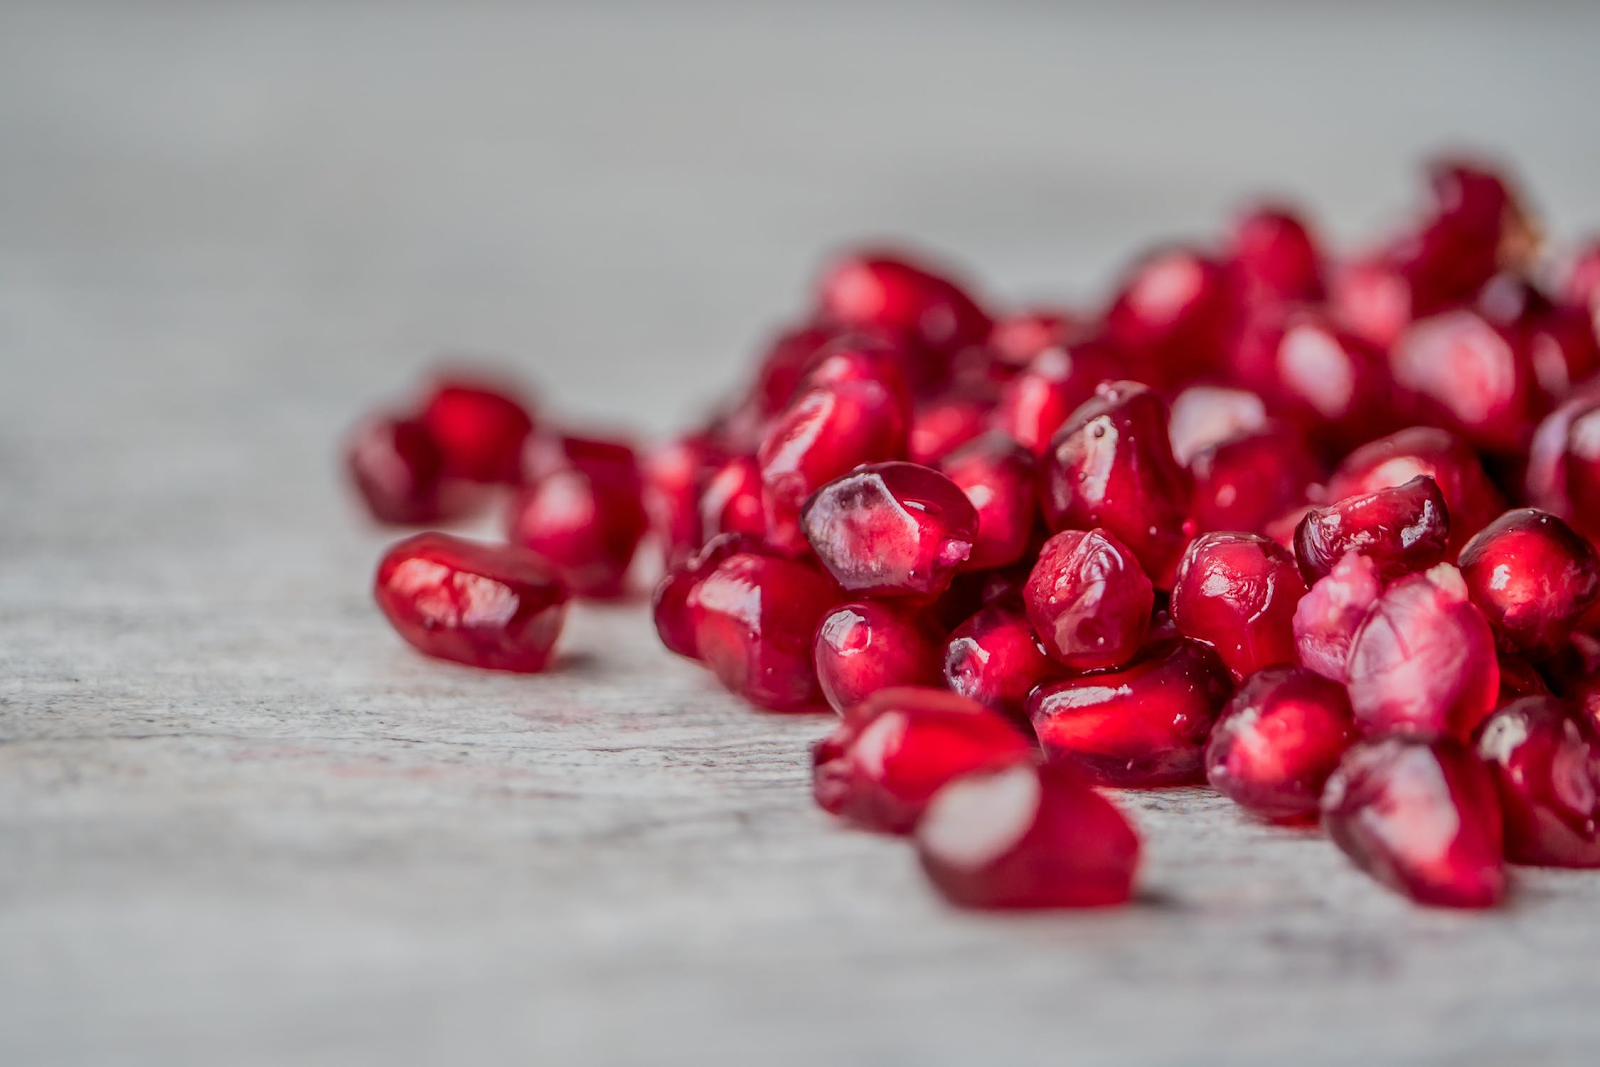 Pomegranate seeds scattered on a gray background